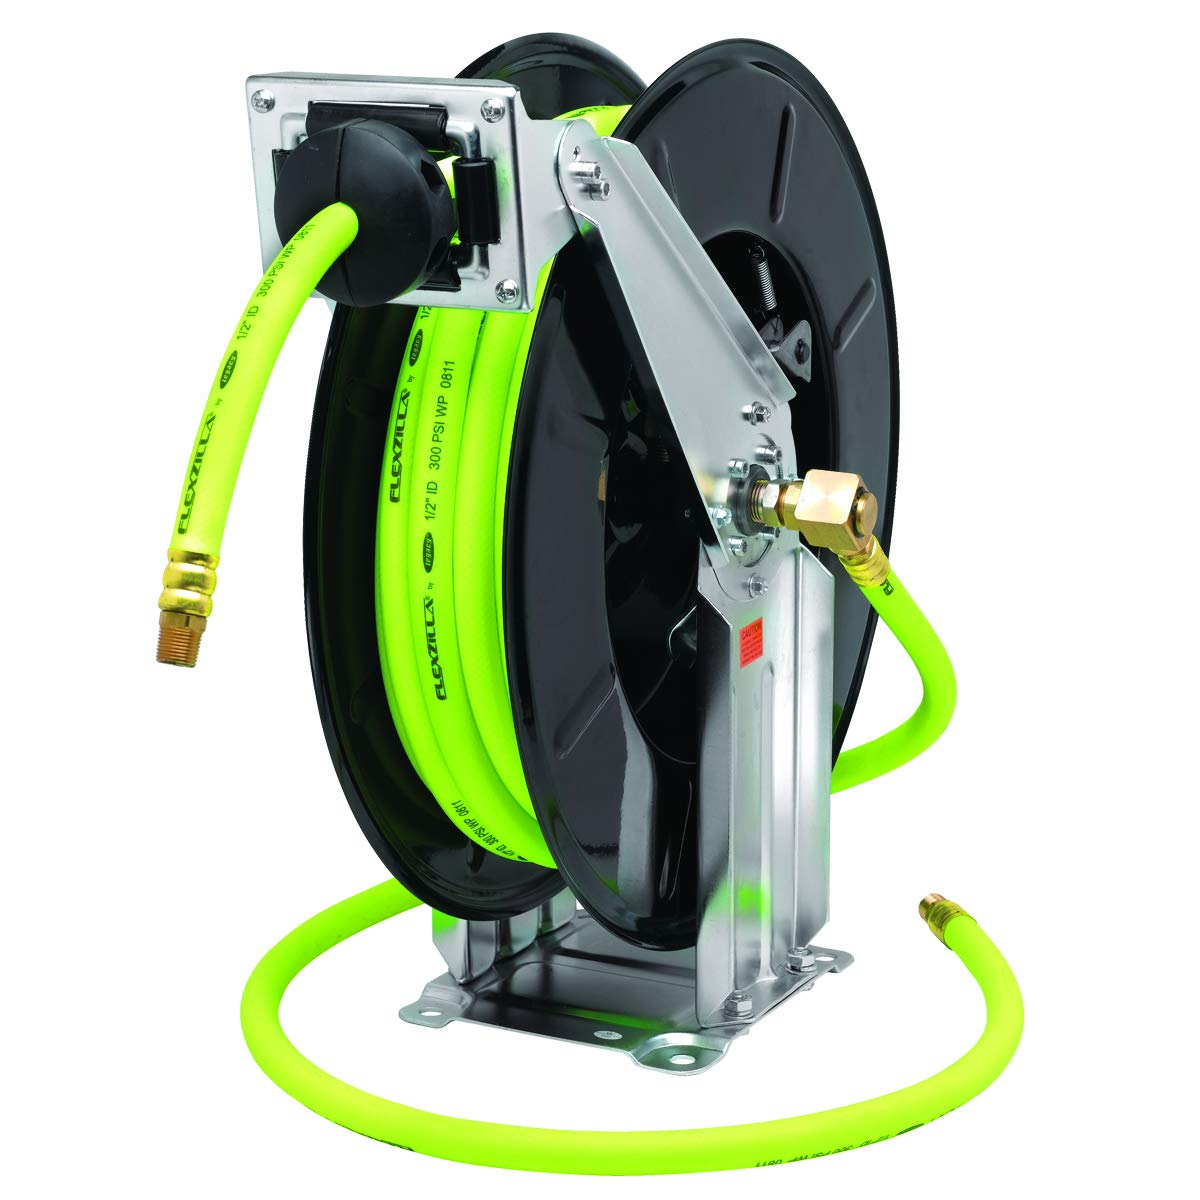 Flexzilla Retractable Open Face Dual Arm Air Hose Reel, 1/2 in. x 50 ft, Heavy Duty, Lightweight, Hybrid, ZillaGreen - L8741FZ